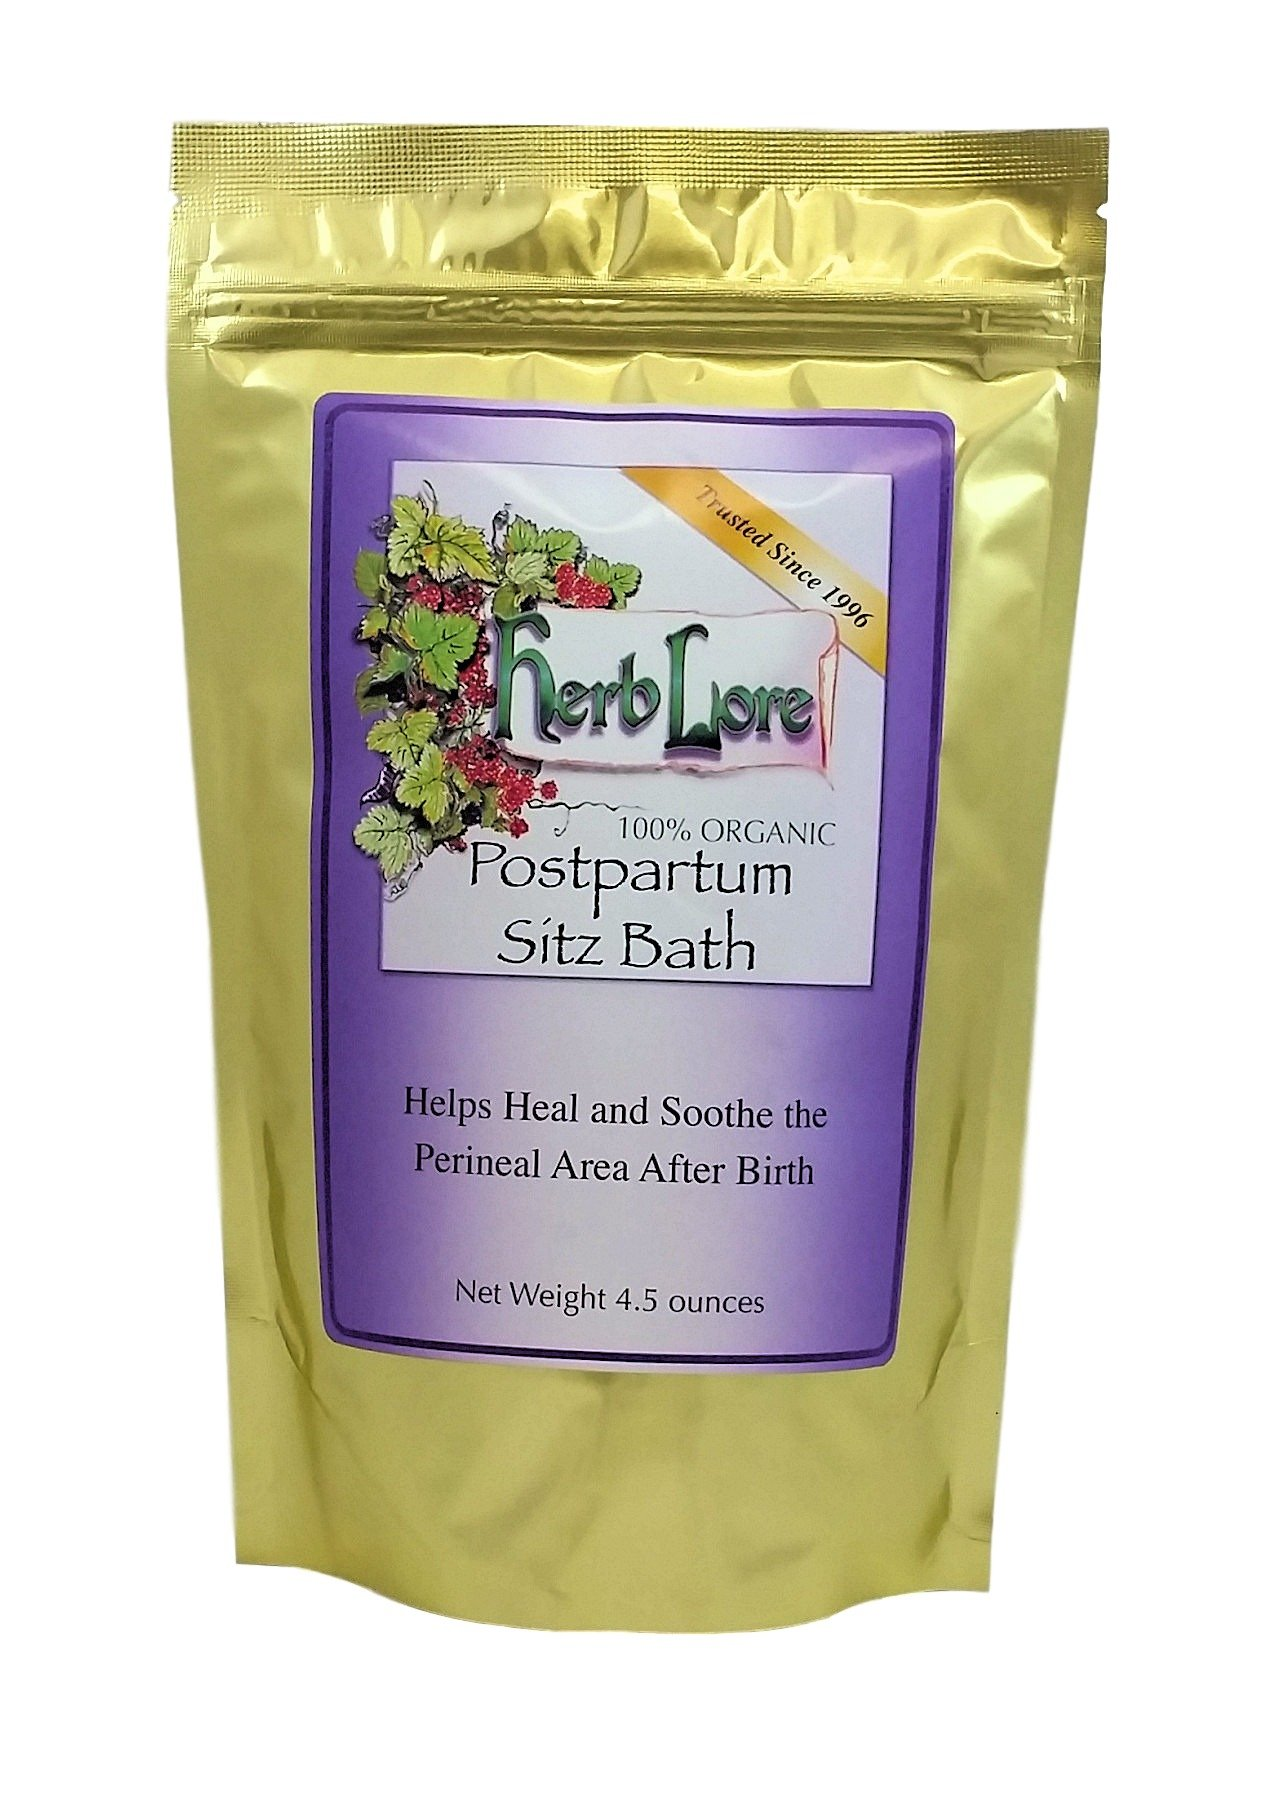 Postpartum Sitz Bath Herbs - Soothing Bath Soak for Post Partum Care & Recovery - Heals and Soothes Hemorrhoids and Damaged Perineal Tissues - Herb Lore by Herb Lore